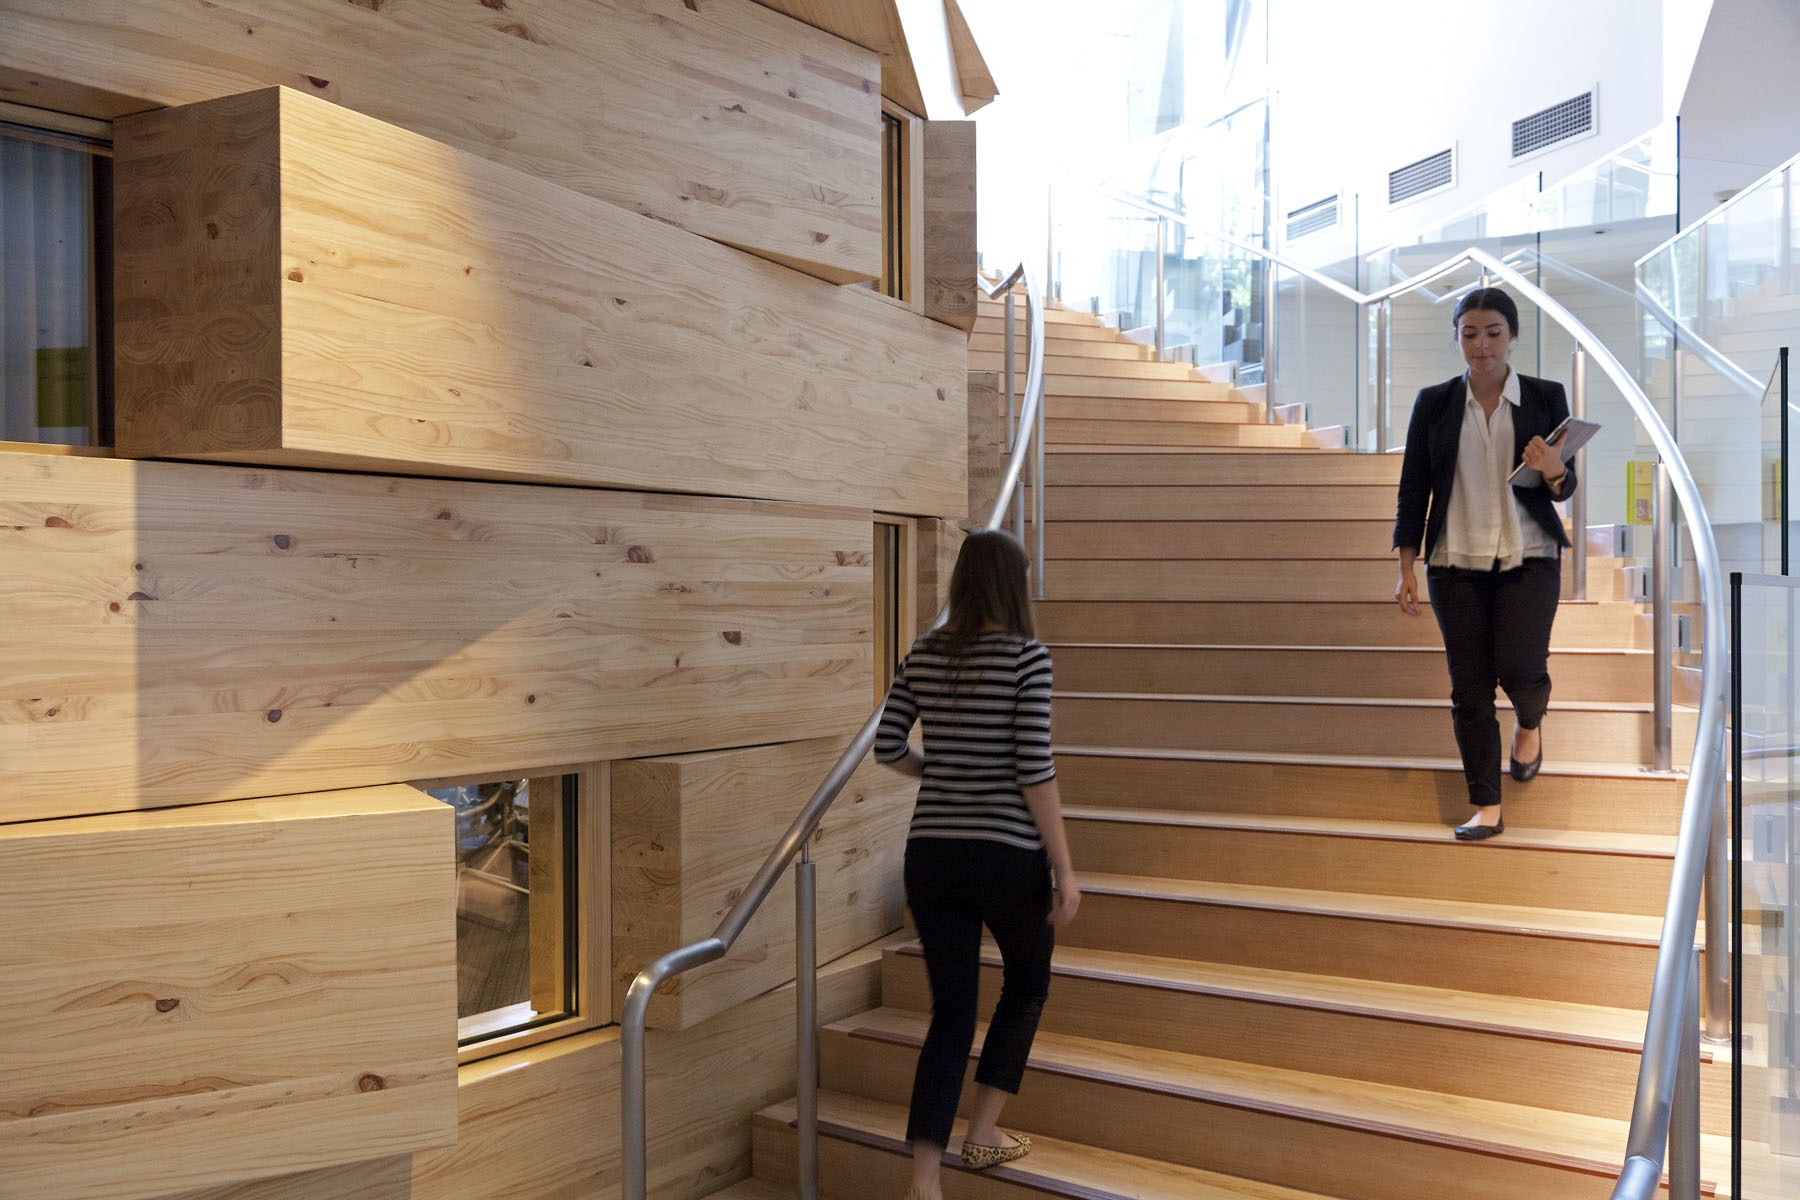 Staircase K, wraps around the oval classroom from level 3 to the student lounge above on level 4.